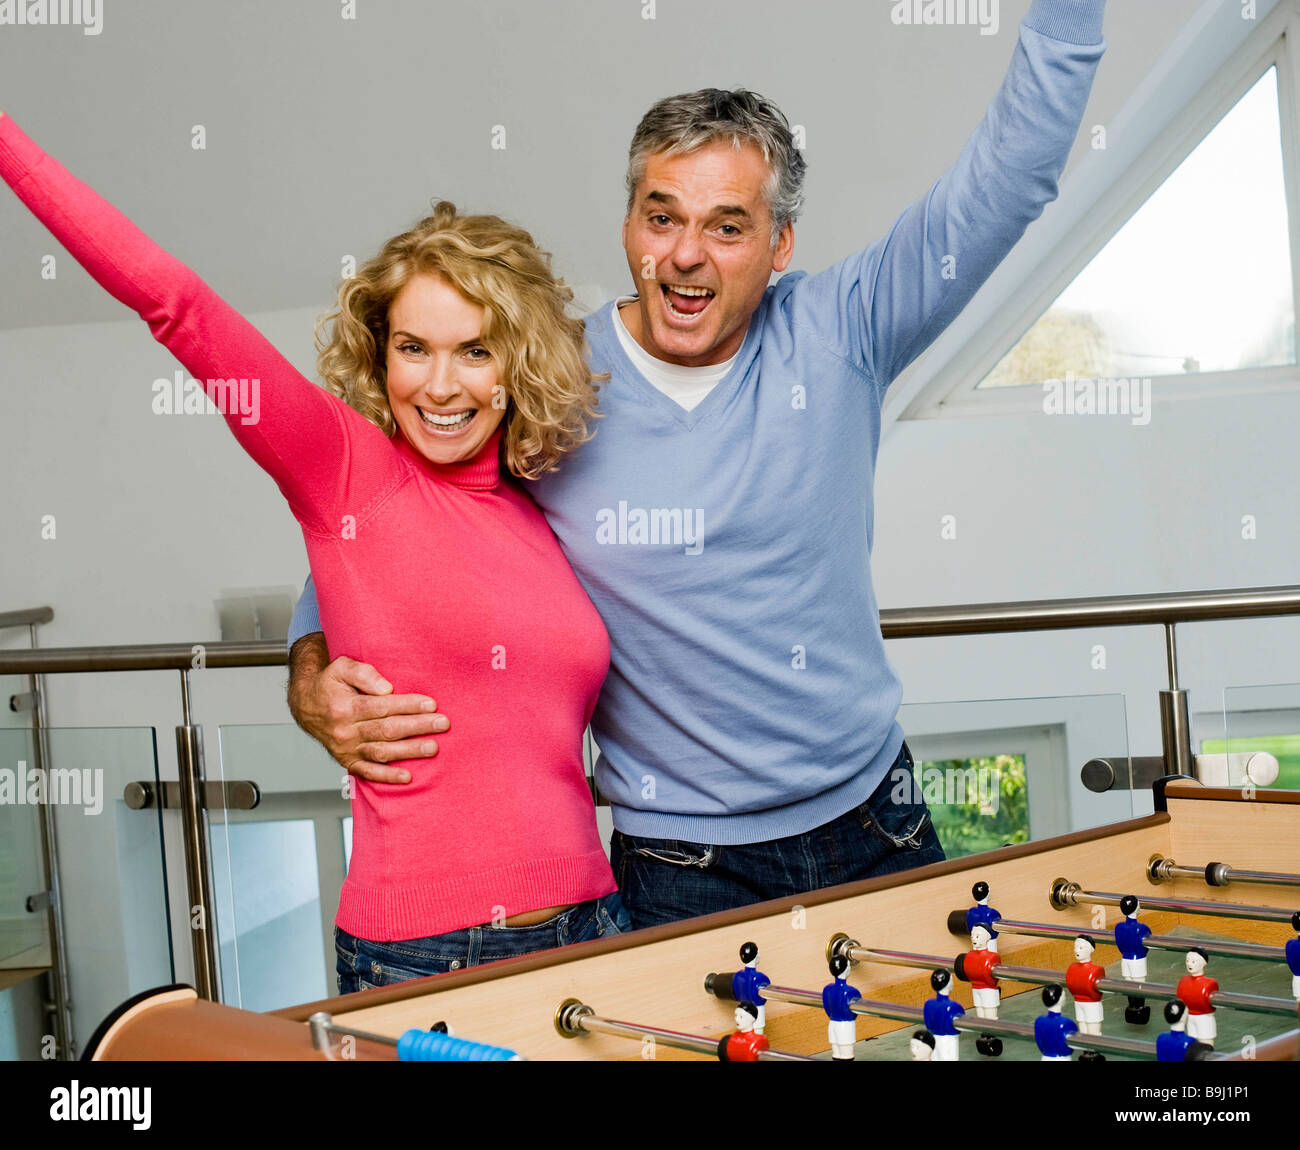 Couple having fun playing table football - Stock Image